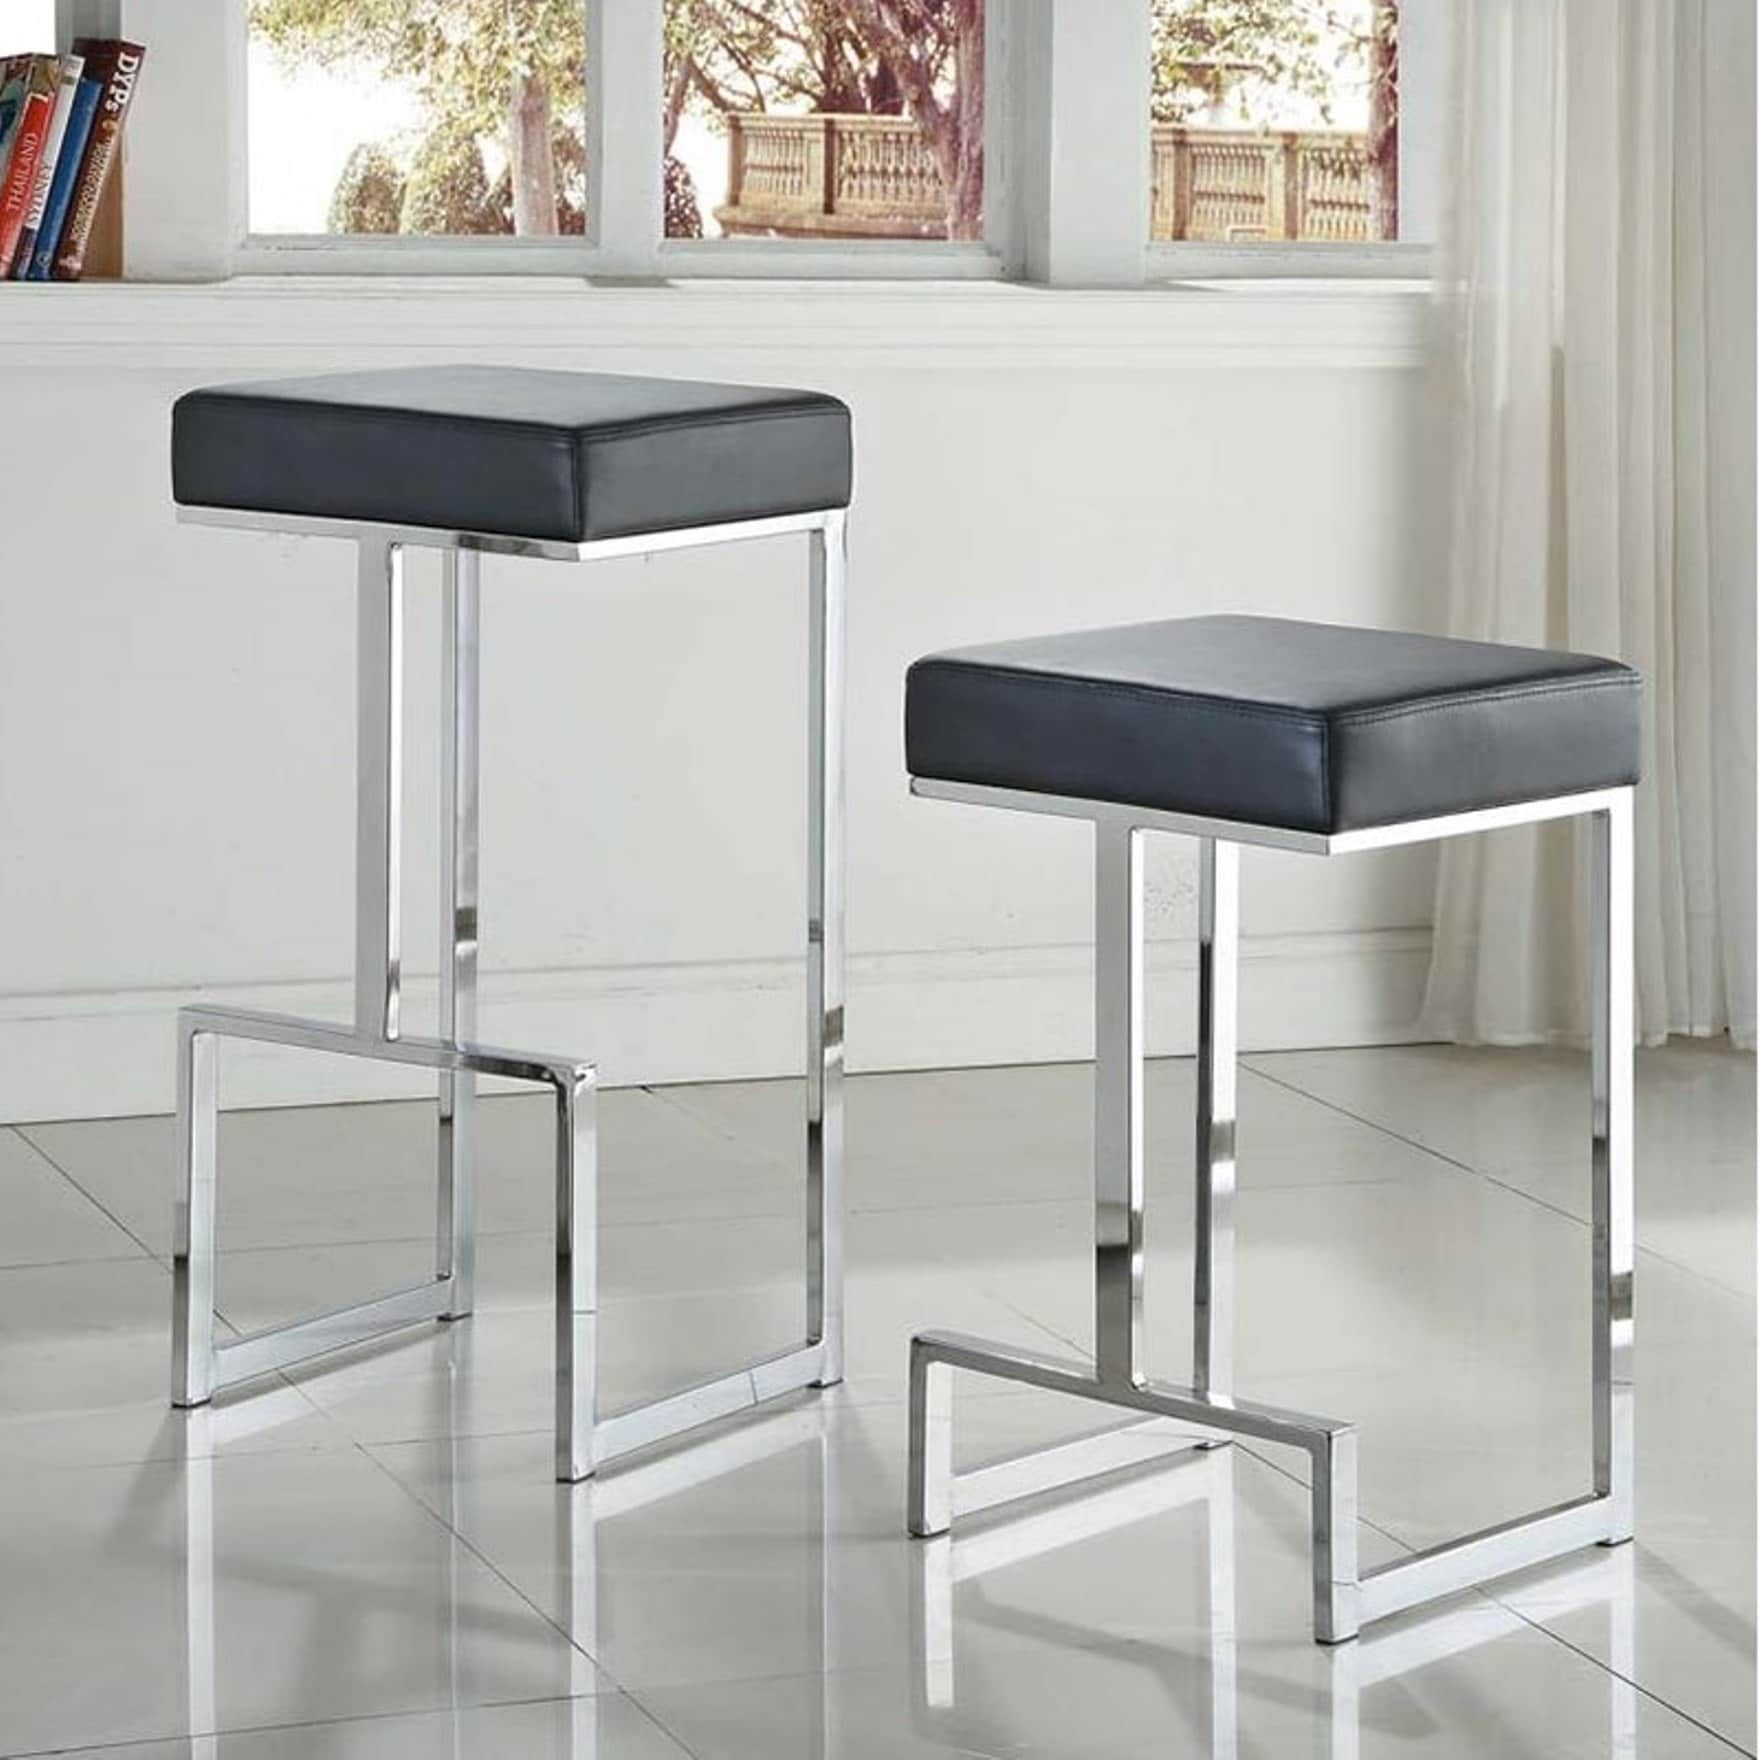 Cool Contemporary Sleek Design Chrome With Black Seat Stool 25 Gmtry Best Dining Table And Chair Ideas Images Gmtryco